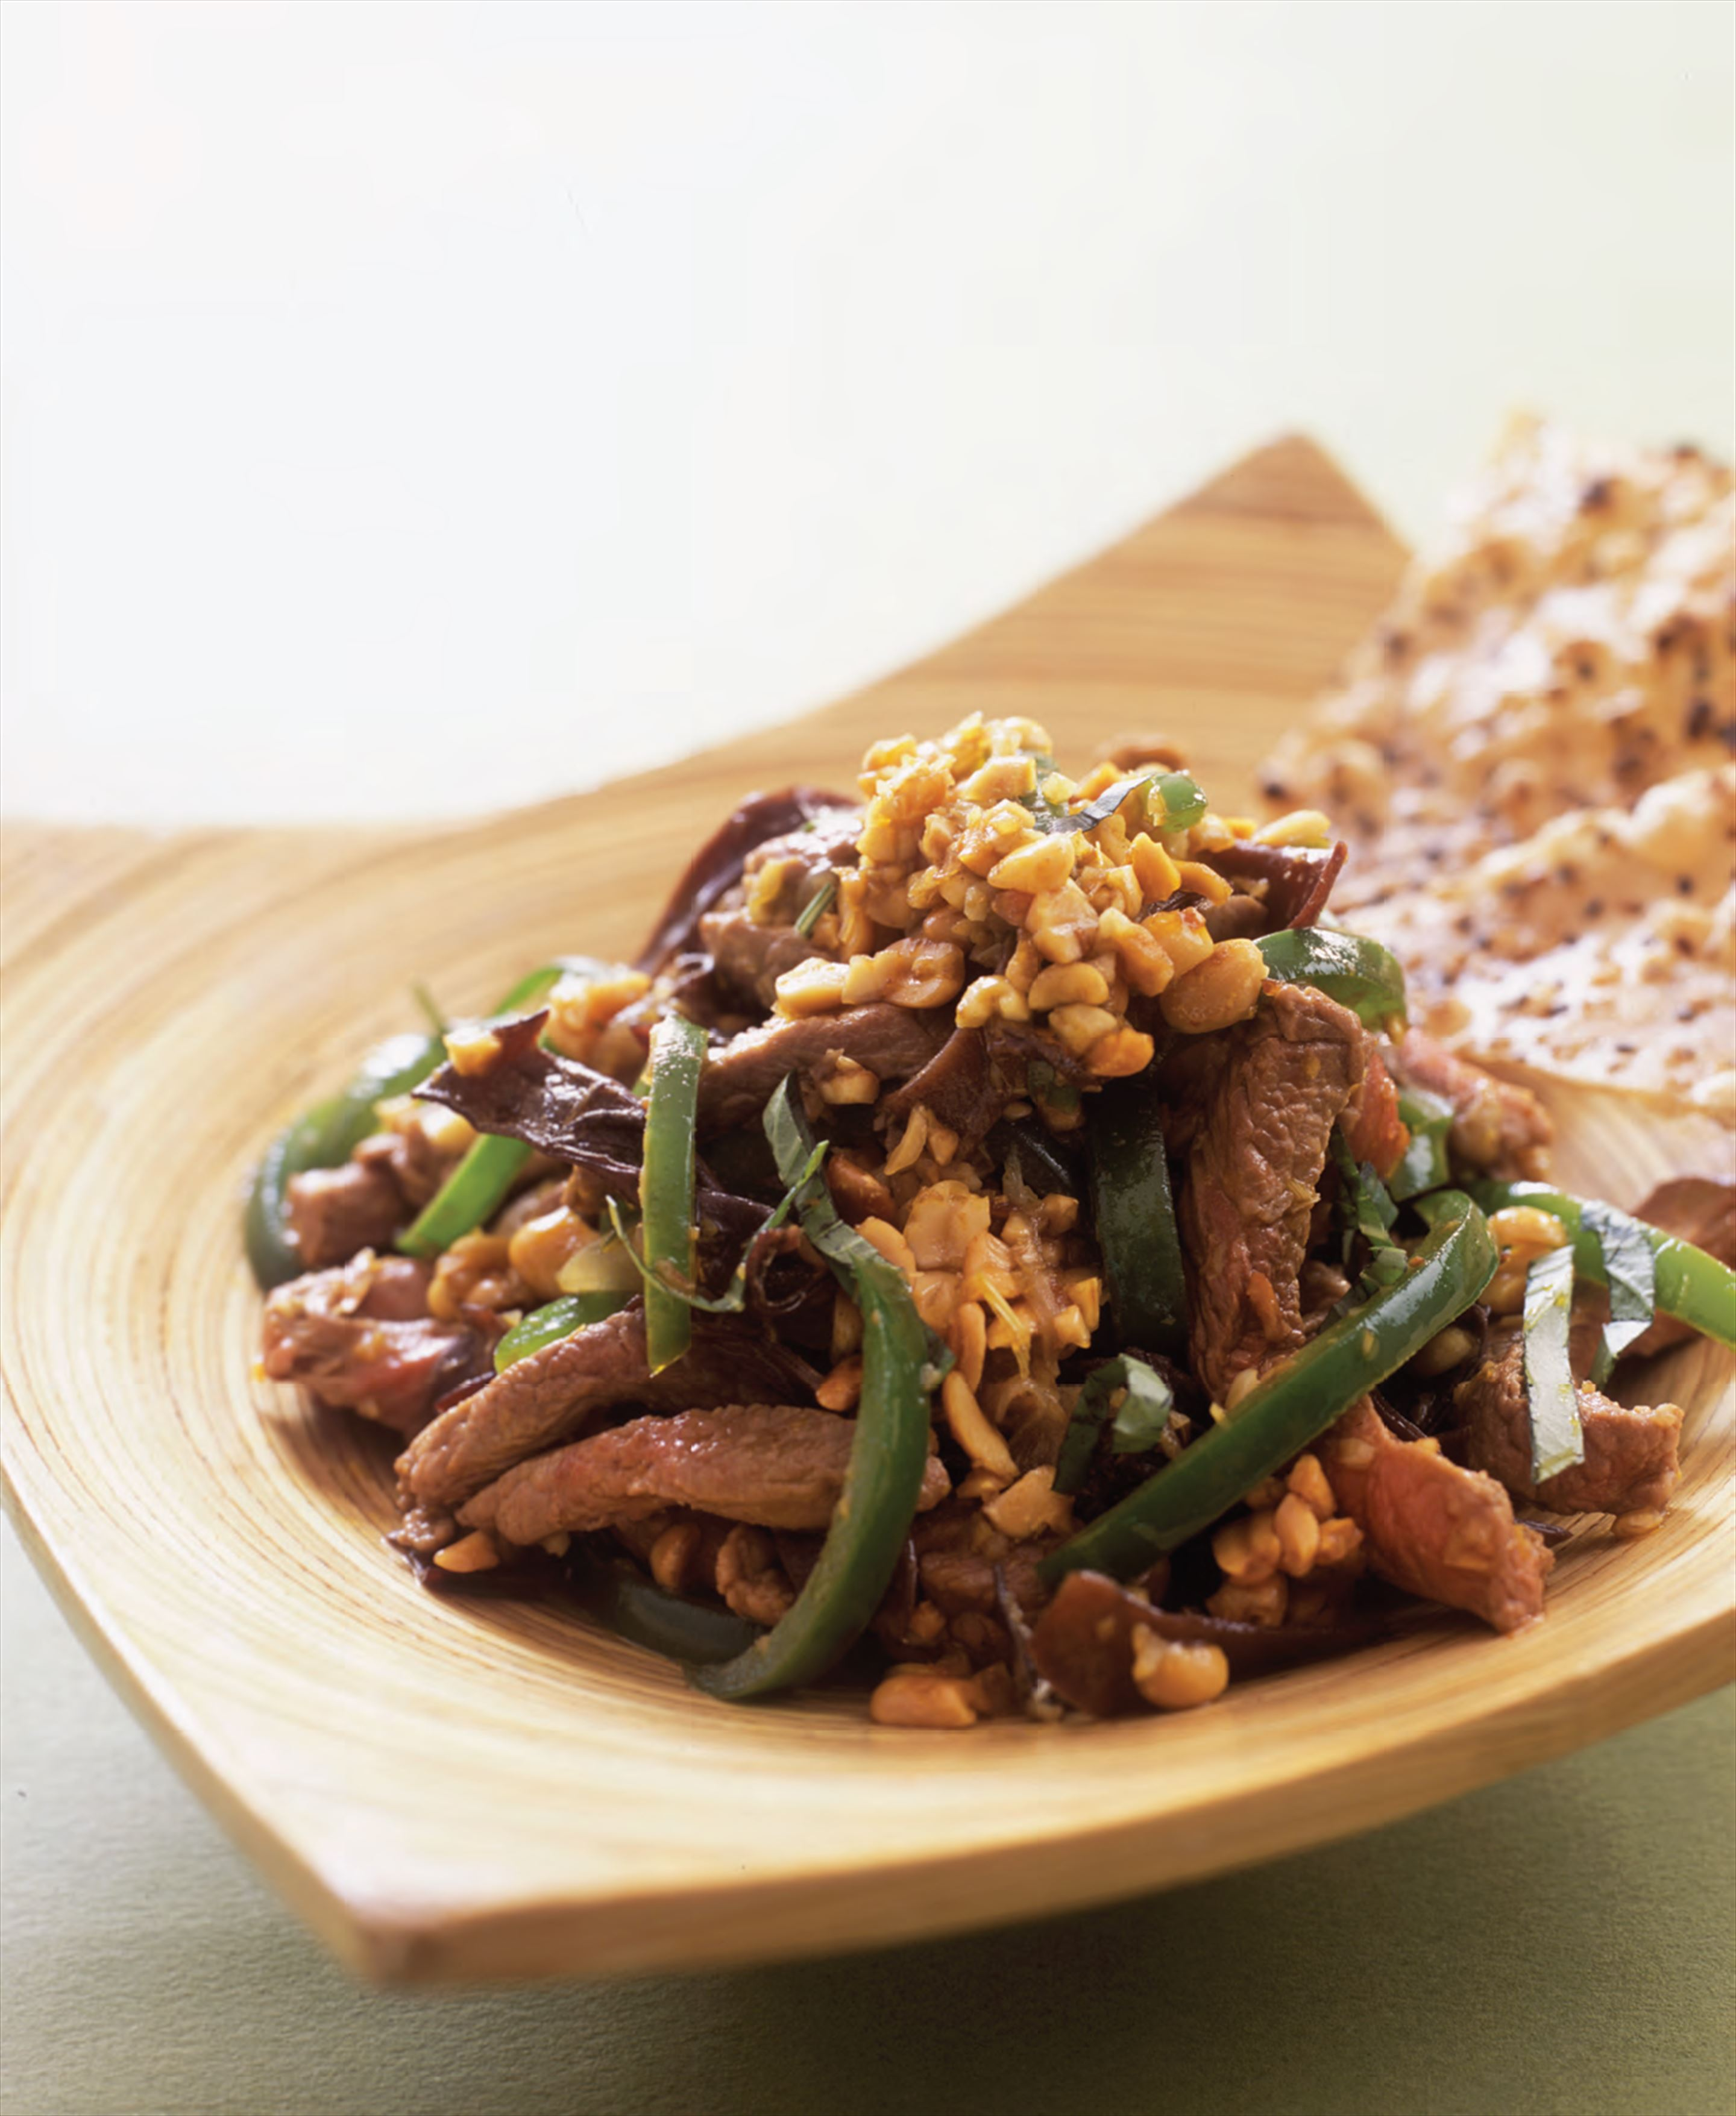 Stir-fried venison with peanuts and lemongrass